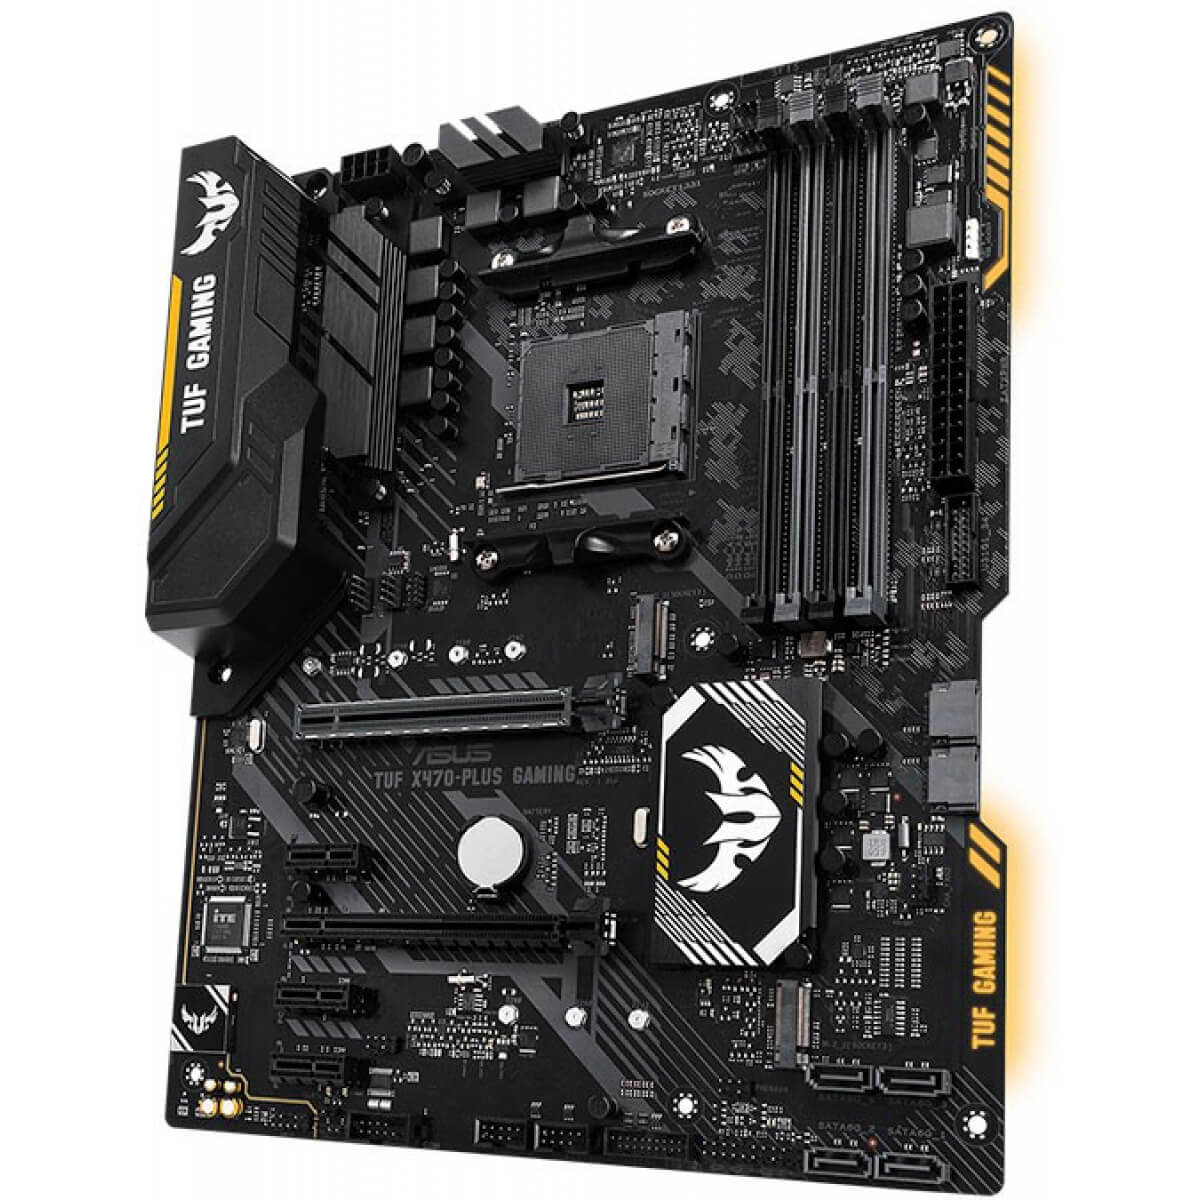 Placa mãe Asus Tuf X470 Plus Gaming USB 3.1 DDR4 AM4